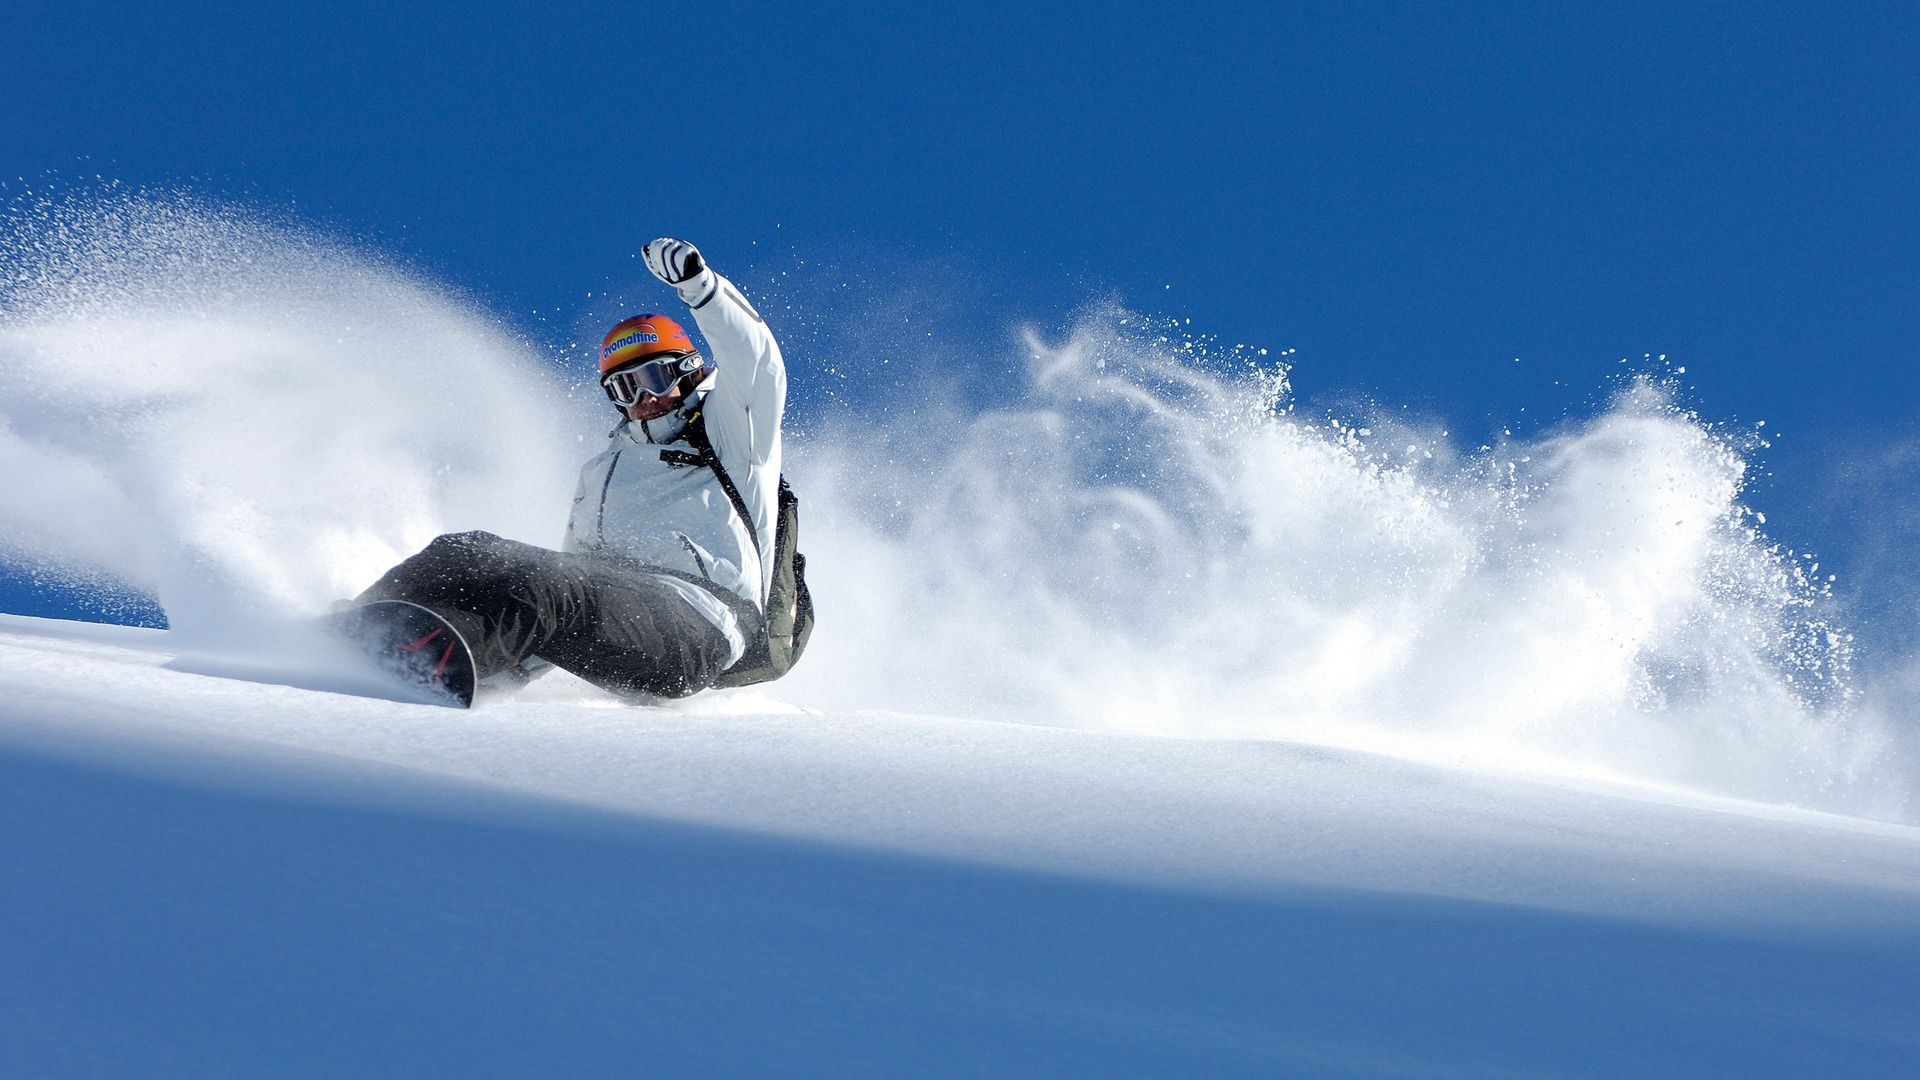 122838 download wallpaper Sports, Snow, Balance, Descent, Snowboard, Extreme, Equilibrium screensavers and pictures for free